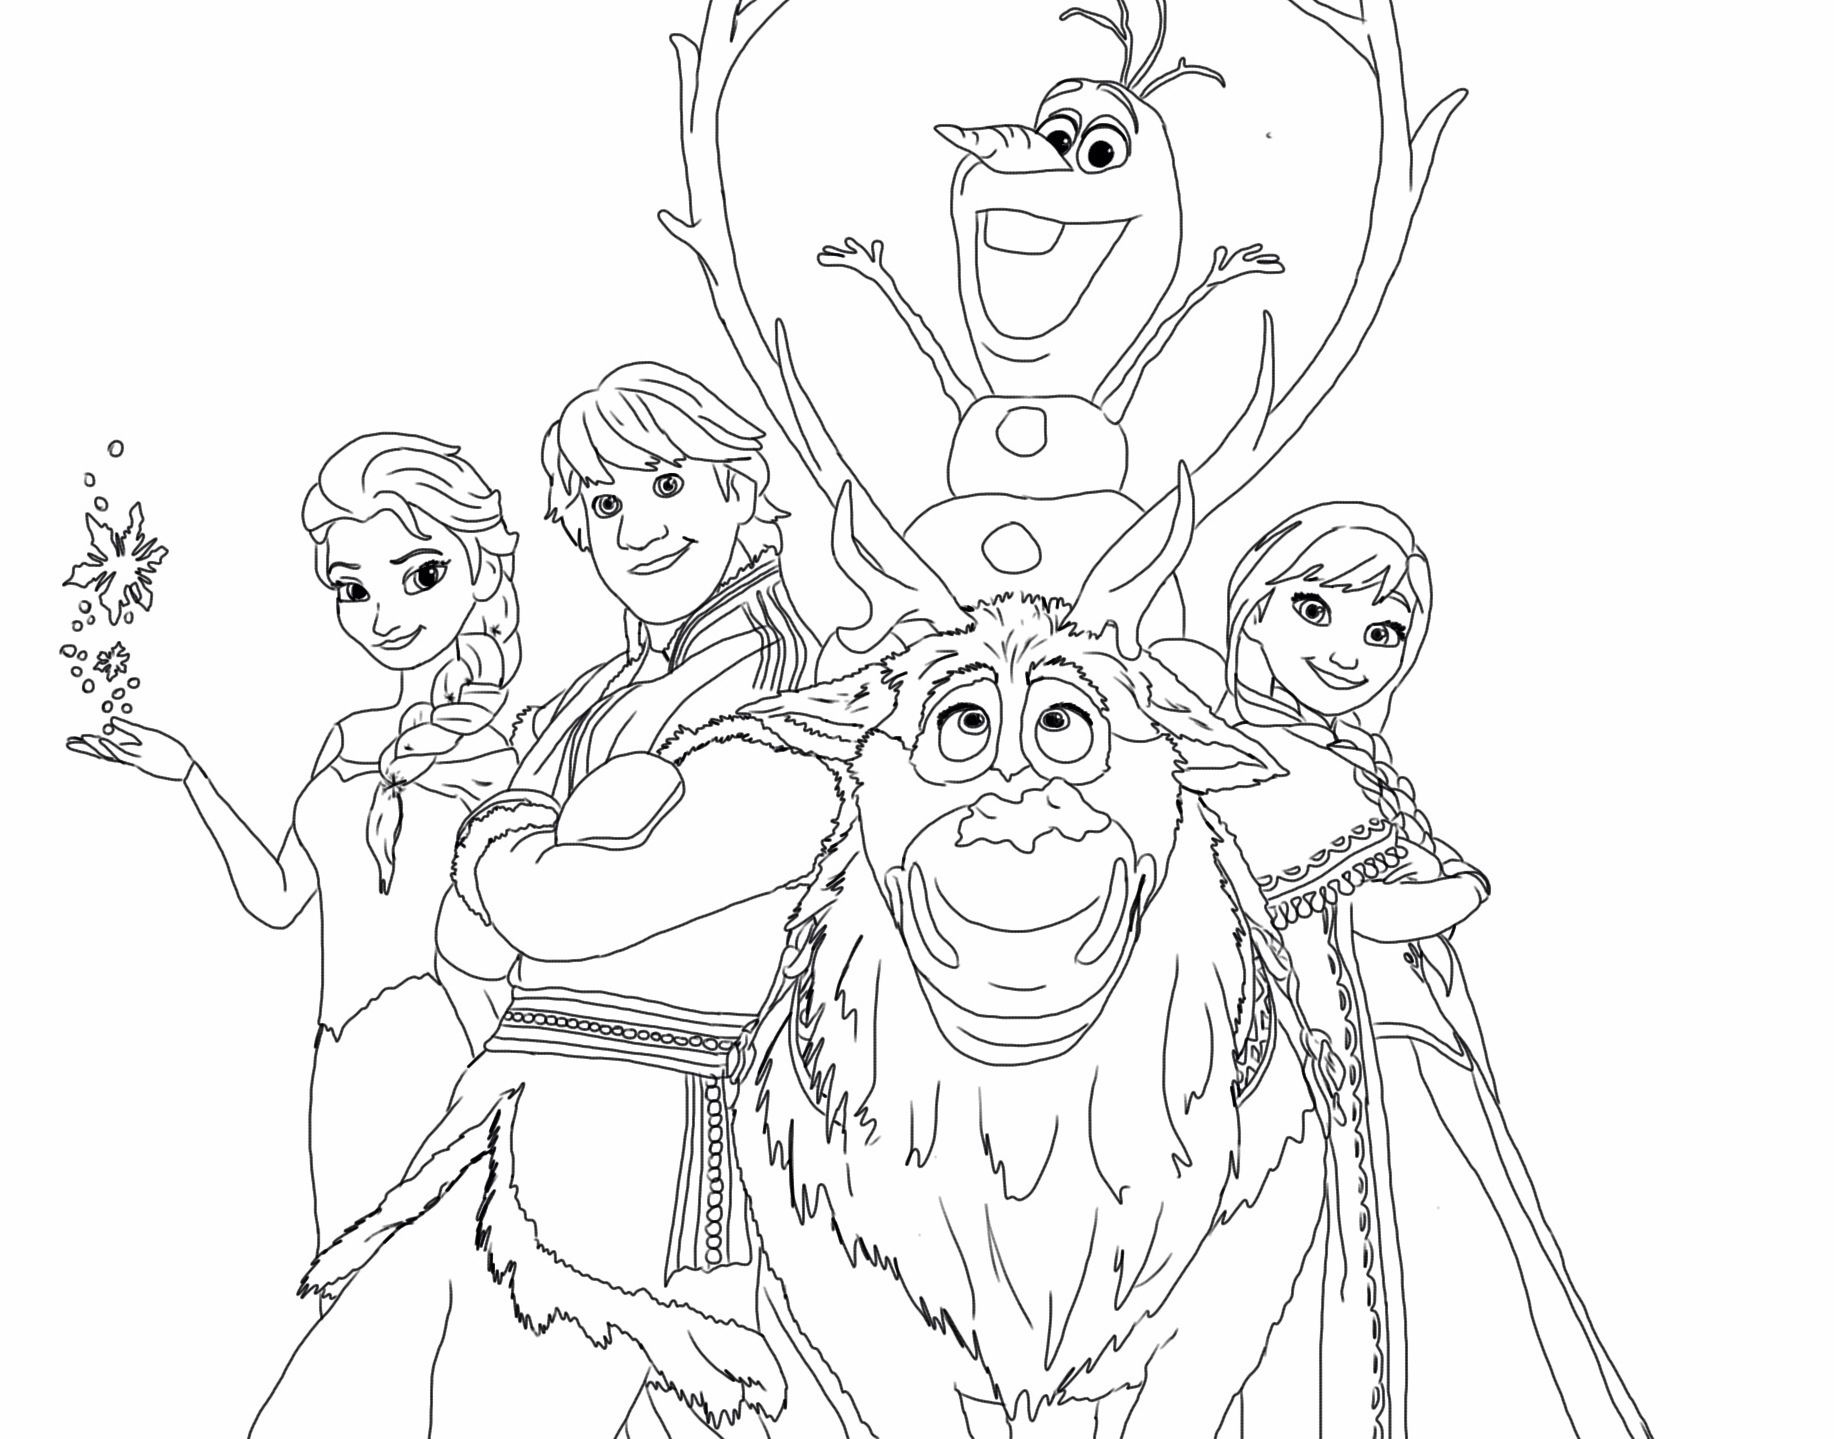 Coloring pages elsa - Coloring Pages Of Disney Frozen Characters